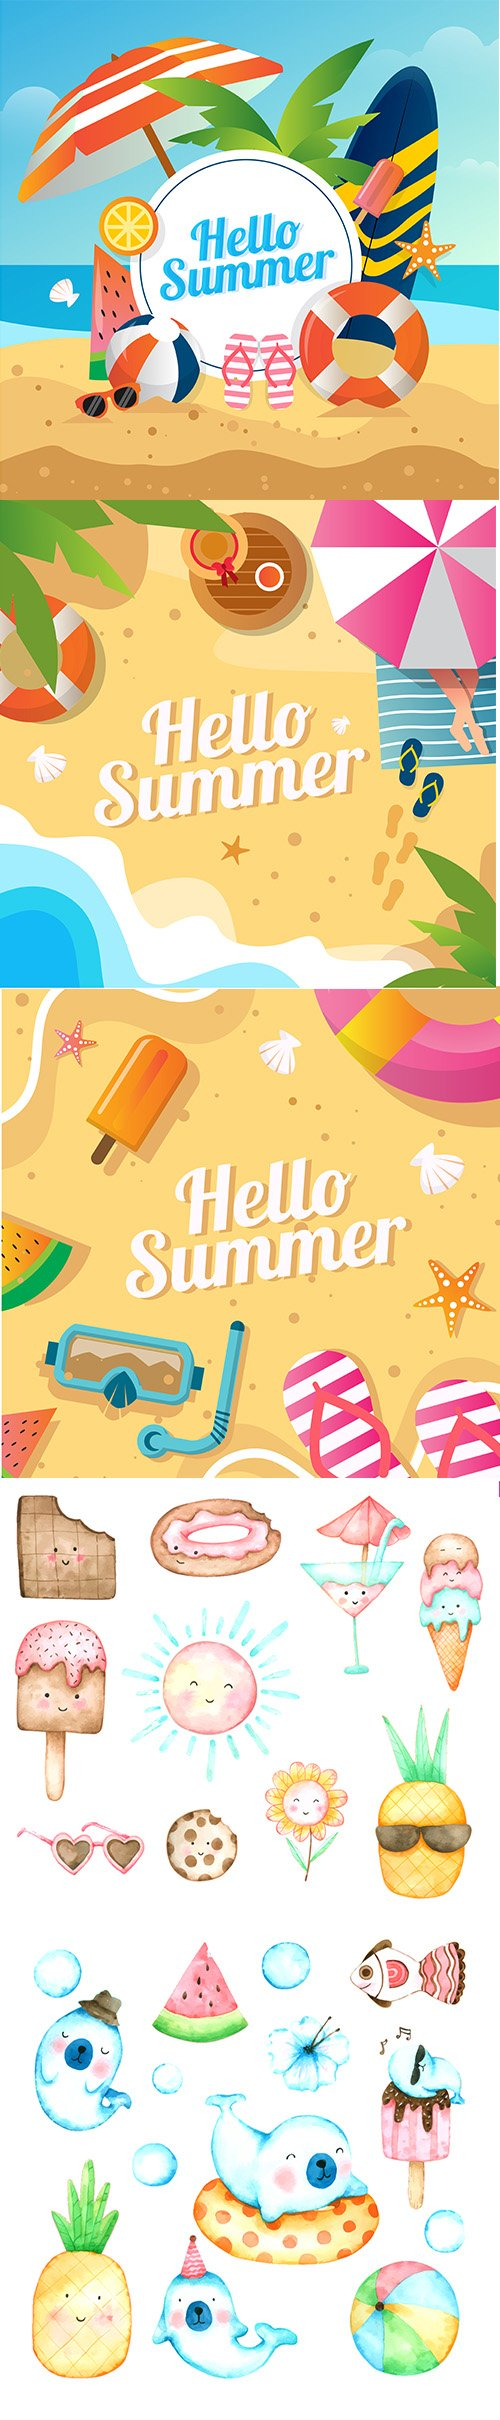 Summer Backgrounds Concept and Cartoons Ice and animals